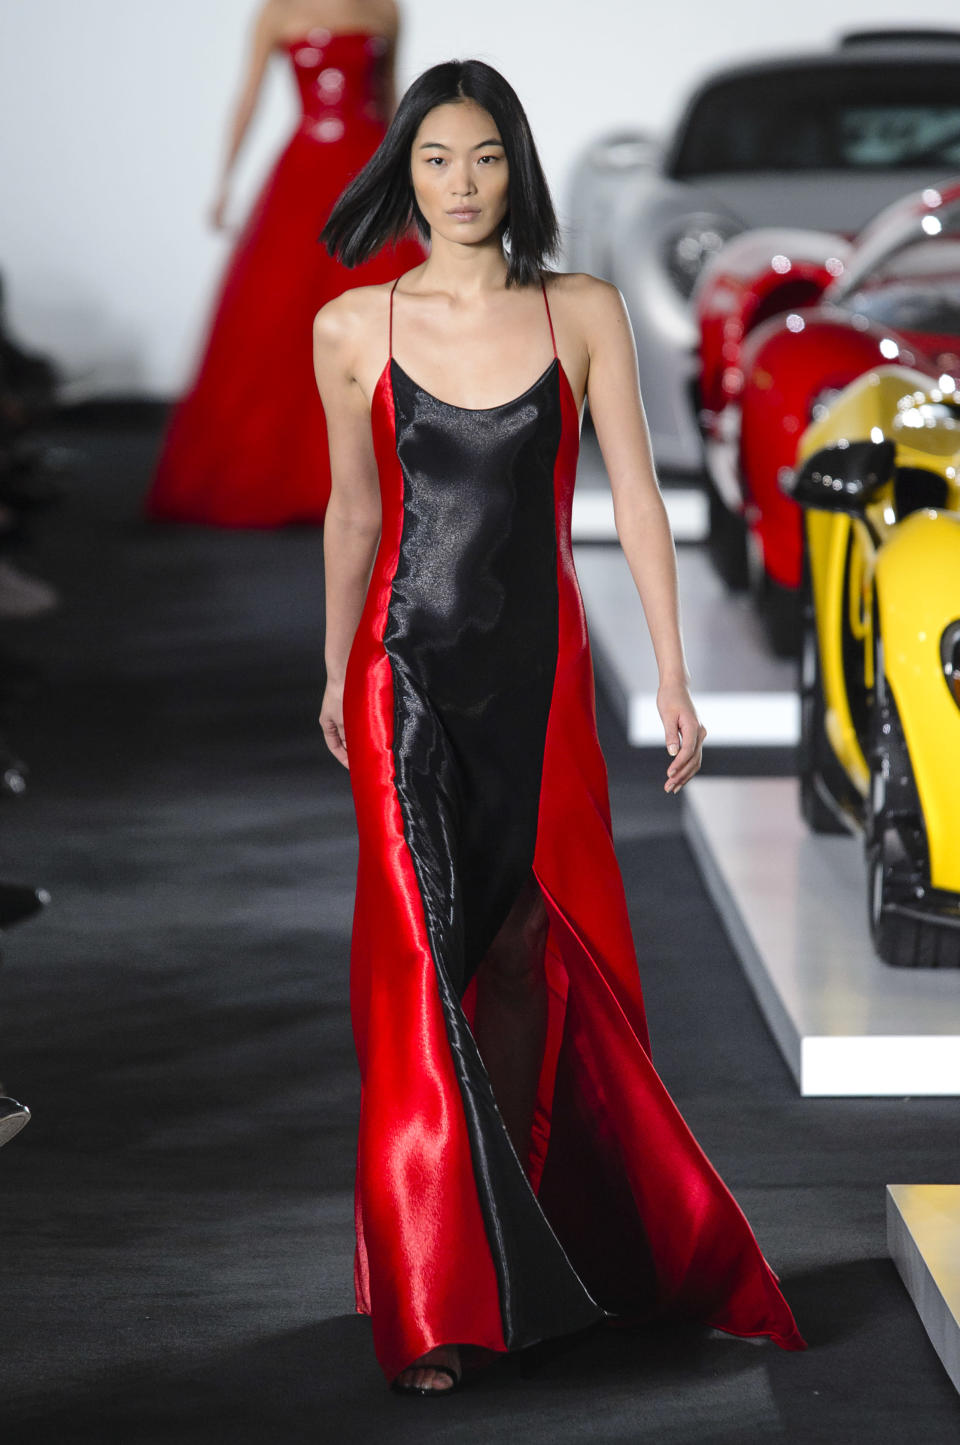 <p><i>Model wears a black-and-red color-block dress from the SS18 Ralph Lauren collection. (Photo: IMAXtree) </i></p>